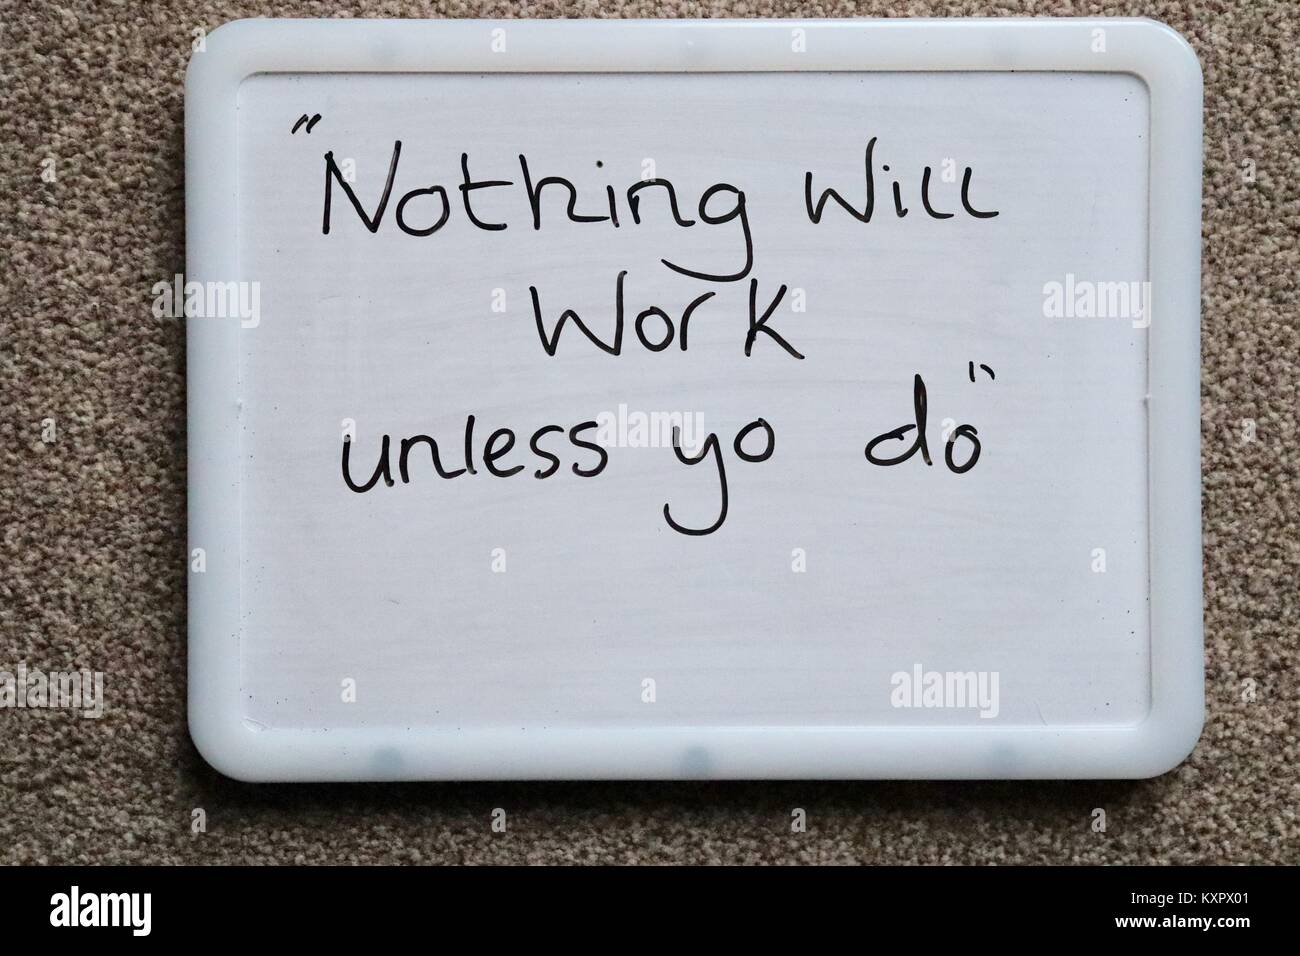 Meaningful Quotes | Whiteboard Saying Meaningful Quotes Of The Day To Inspire And Stock